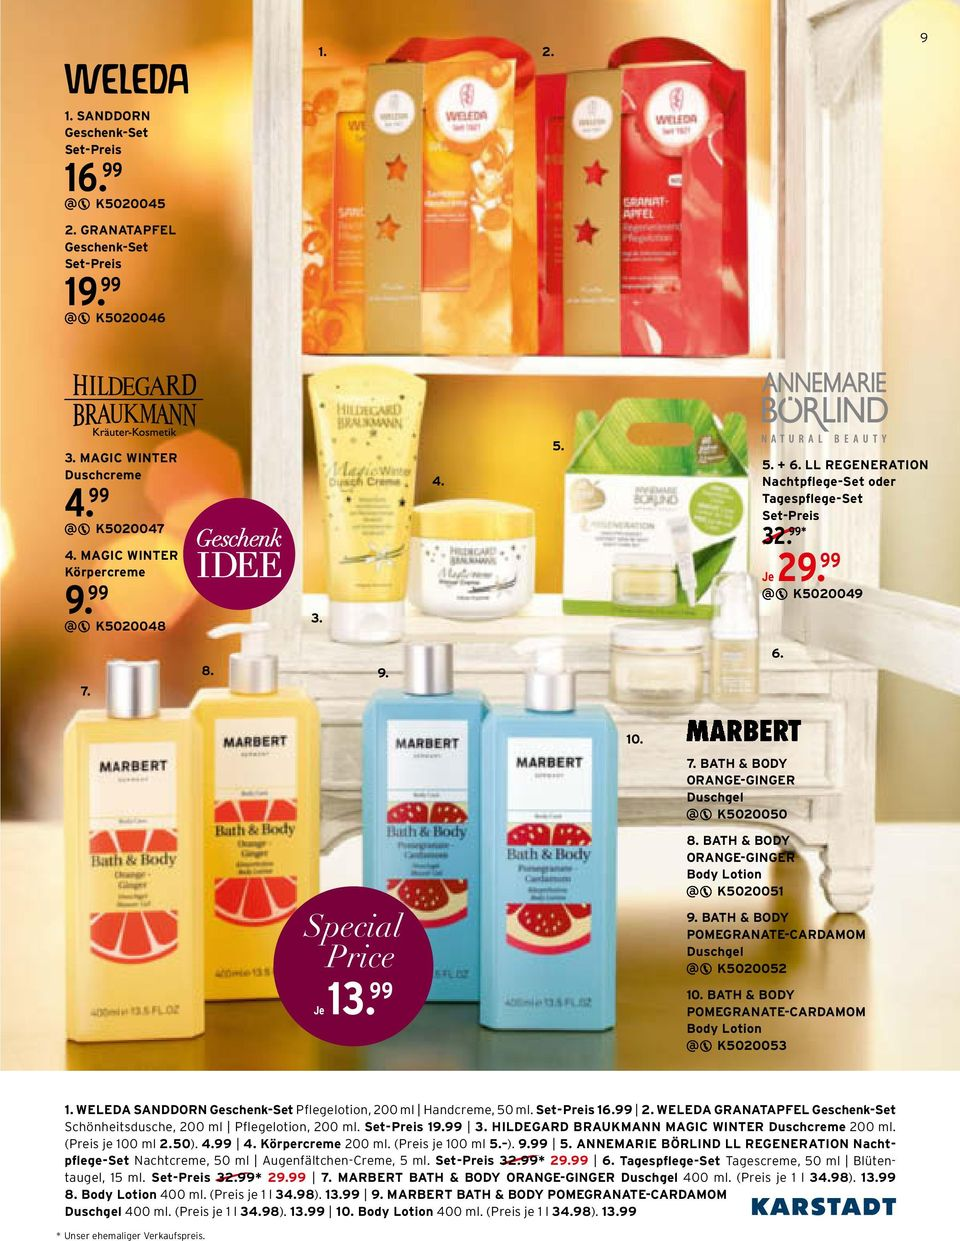 BATH & BODY ORANGE-GINGER Body Lotion K500051 9. BATH & BODY POMEGRANATE-CARDAMOM Duschgel K50005 10. BATH & BODY POMEGRANATE-CARDAMOM Body Lotion K500053 1.